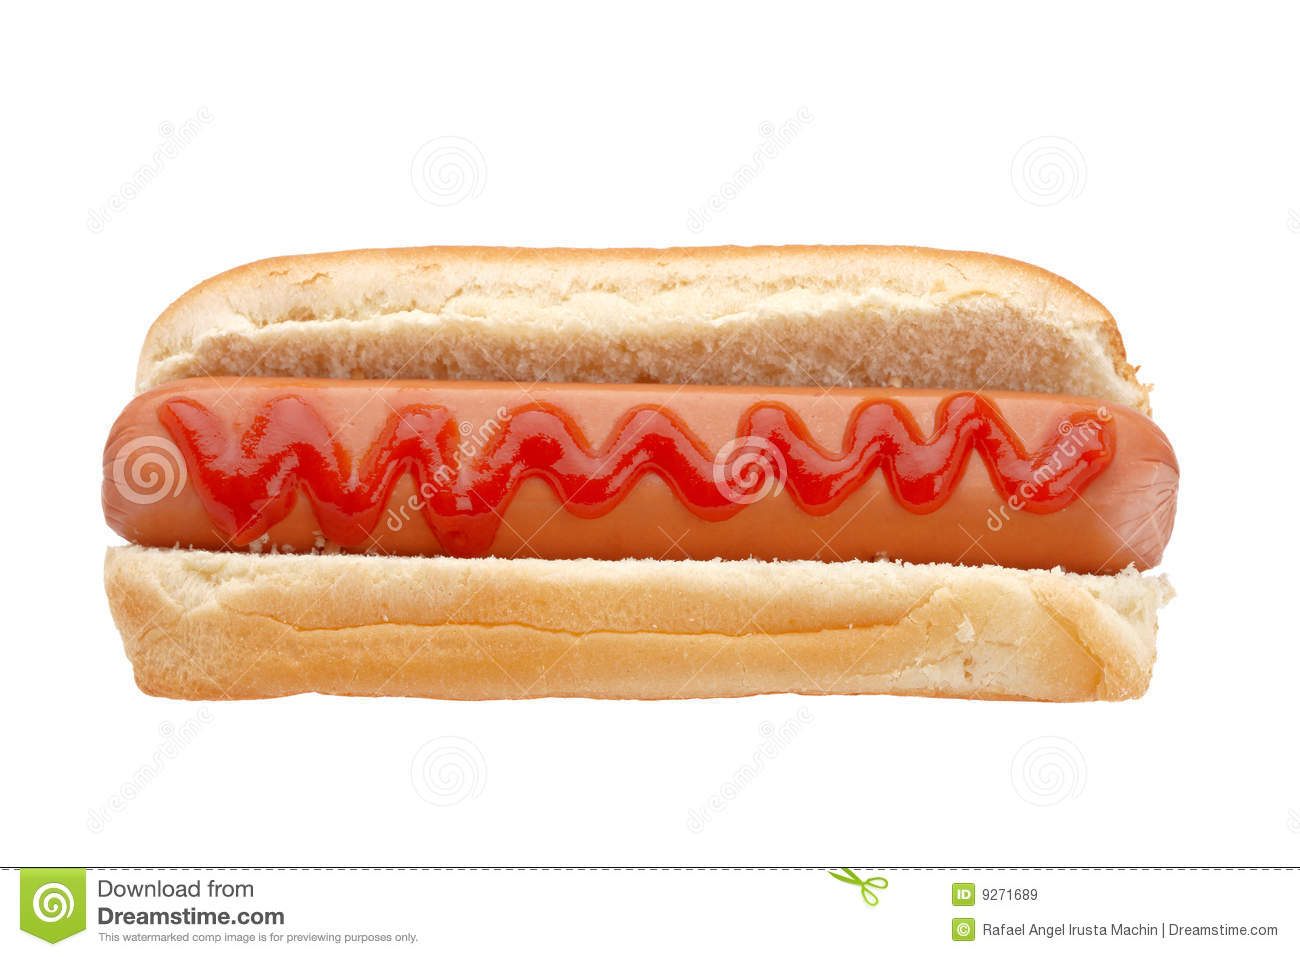 how to know hotdog is cooked